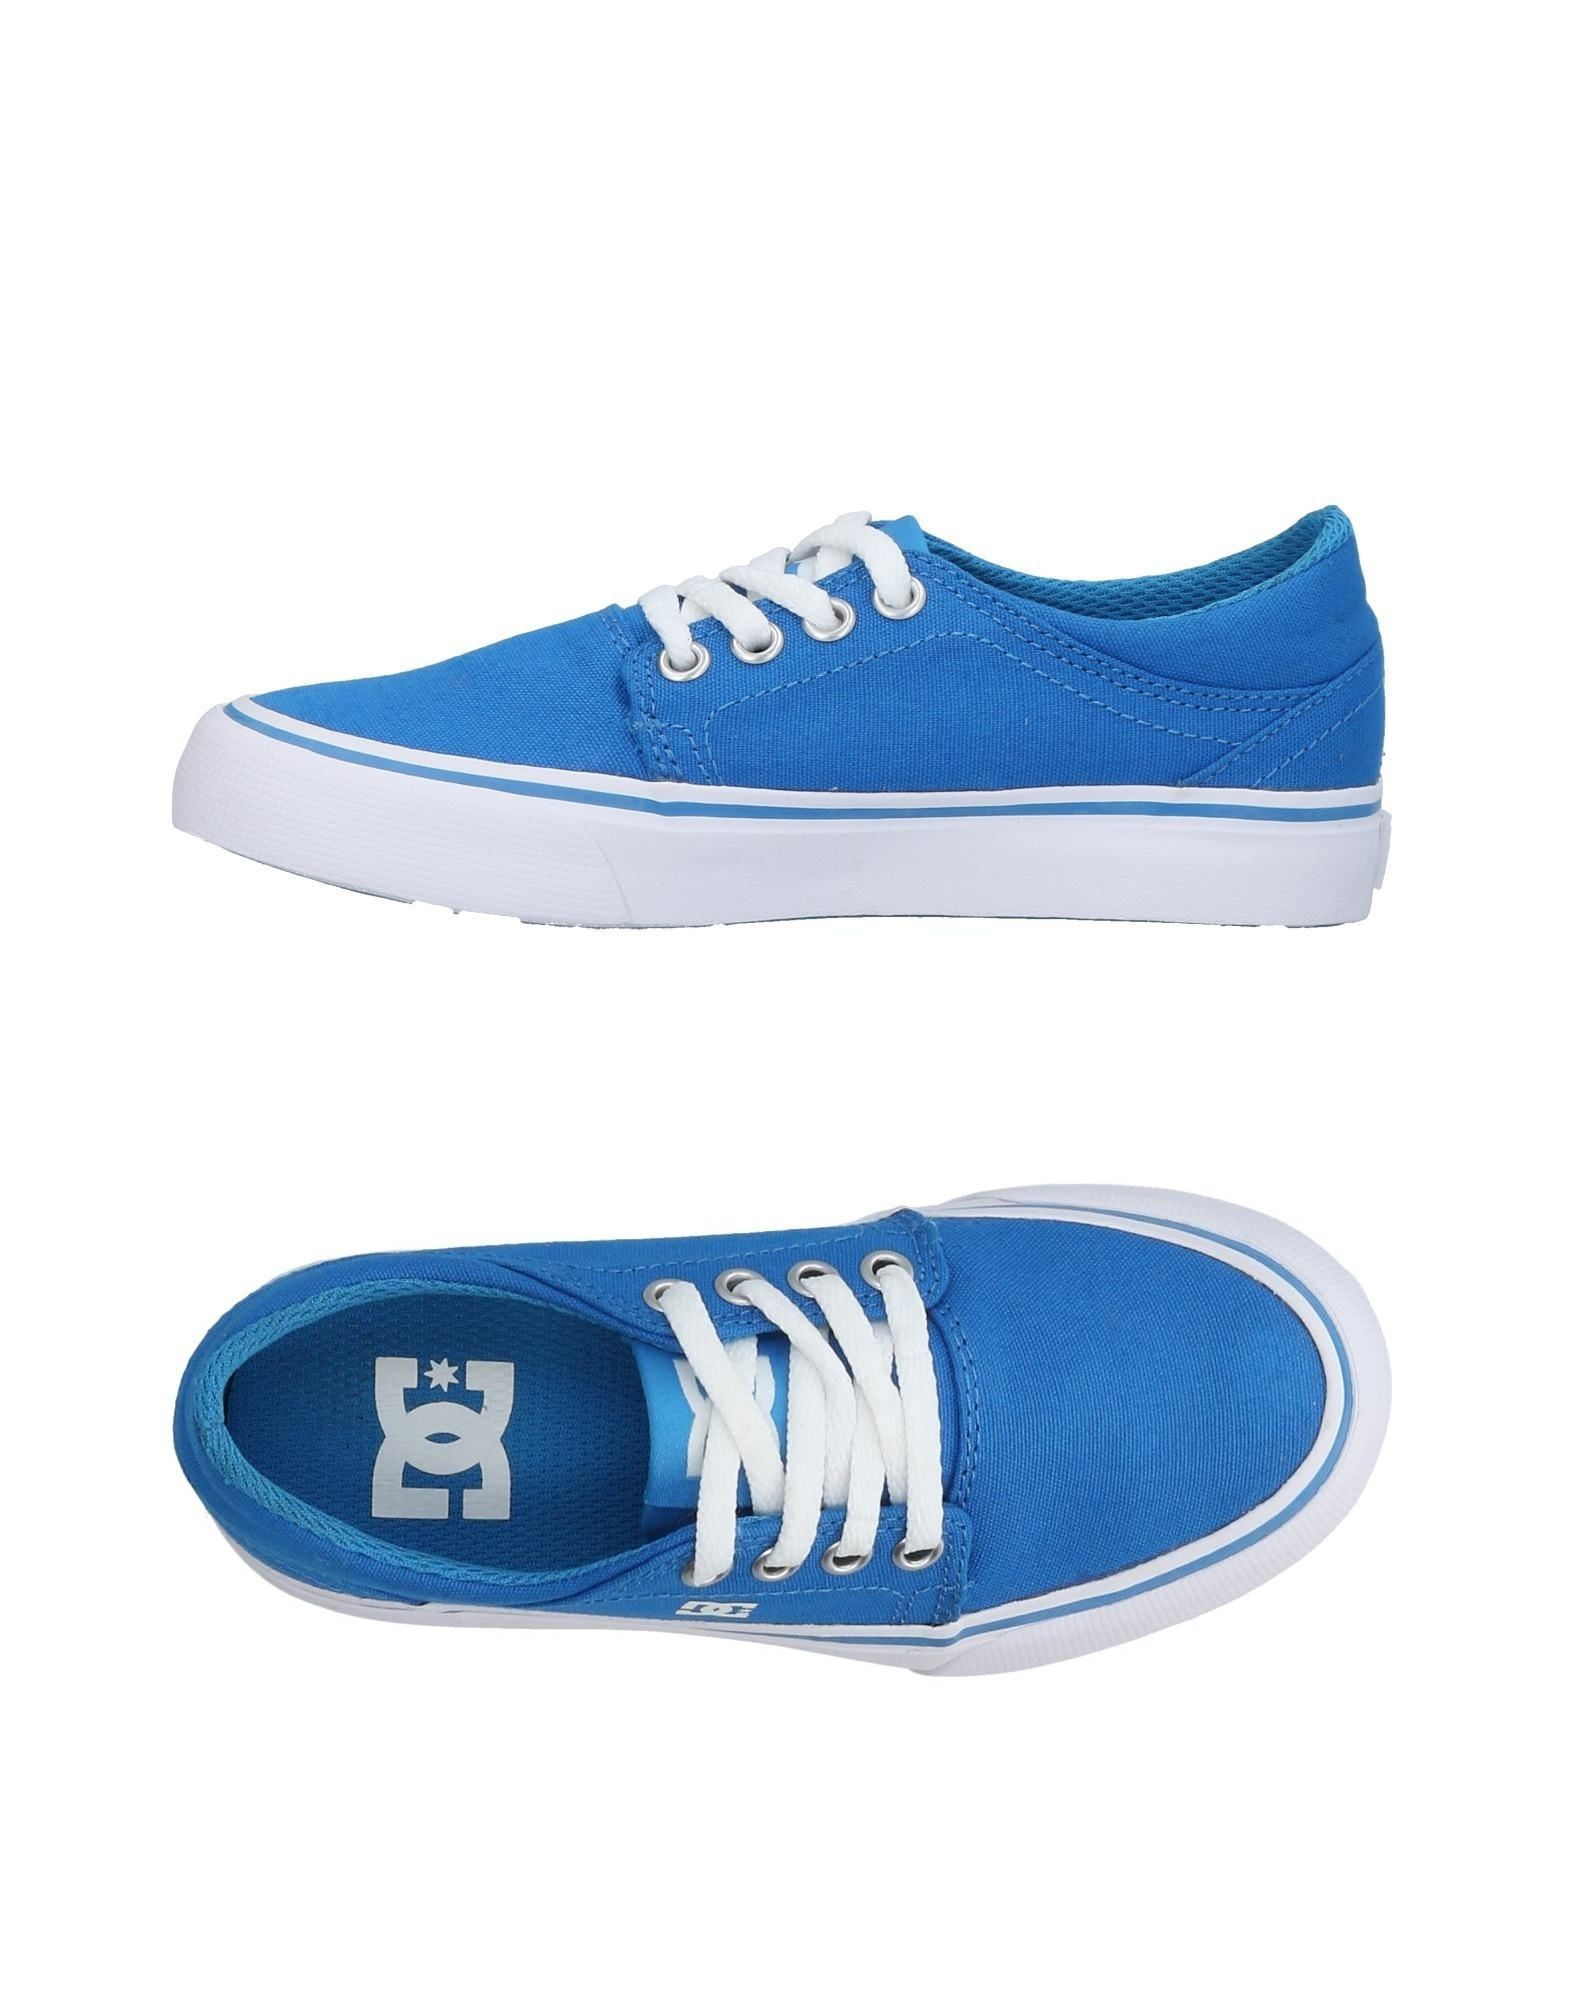 Dc Shoes Blue Sneakers